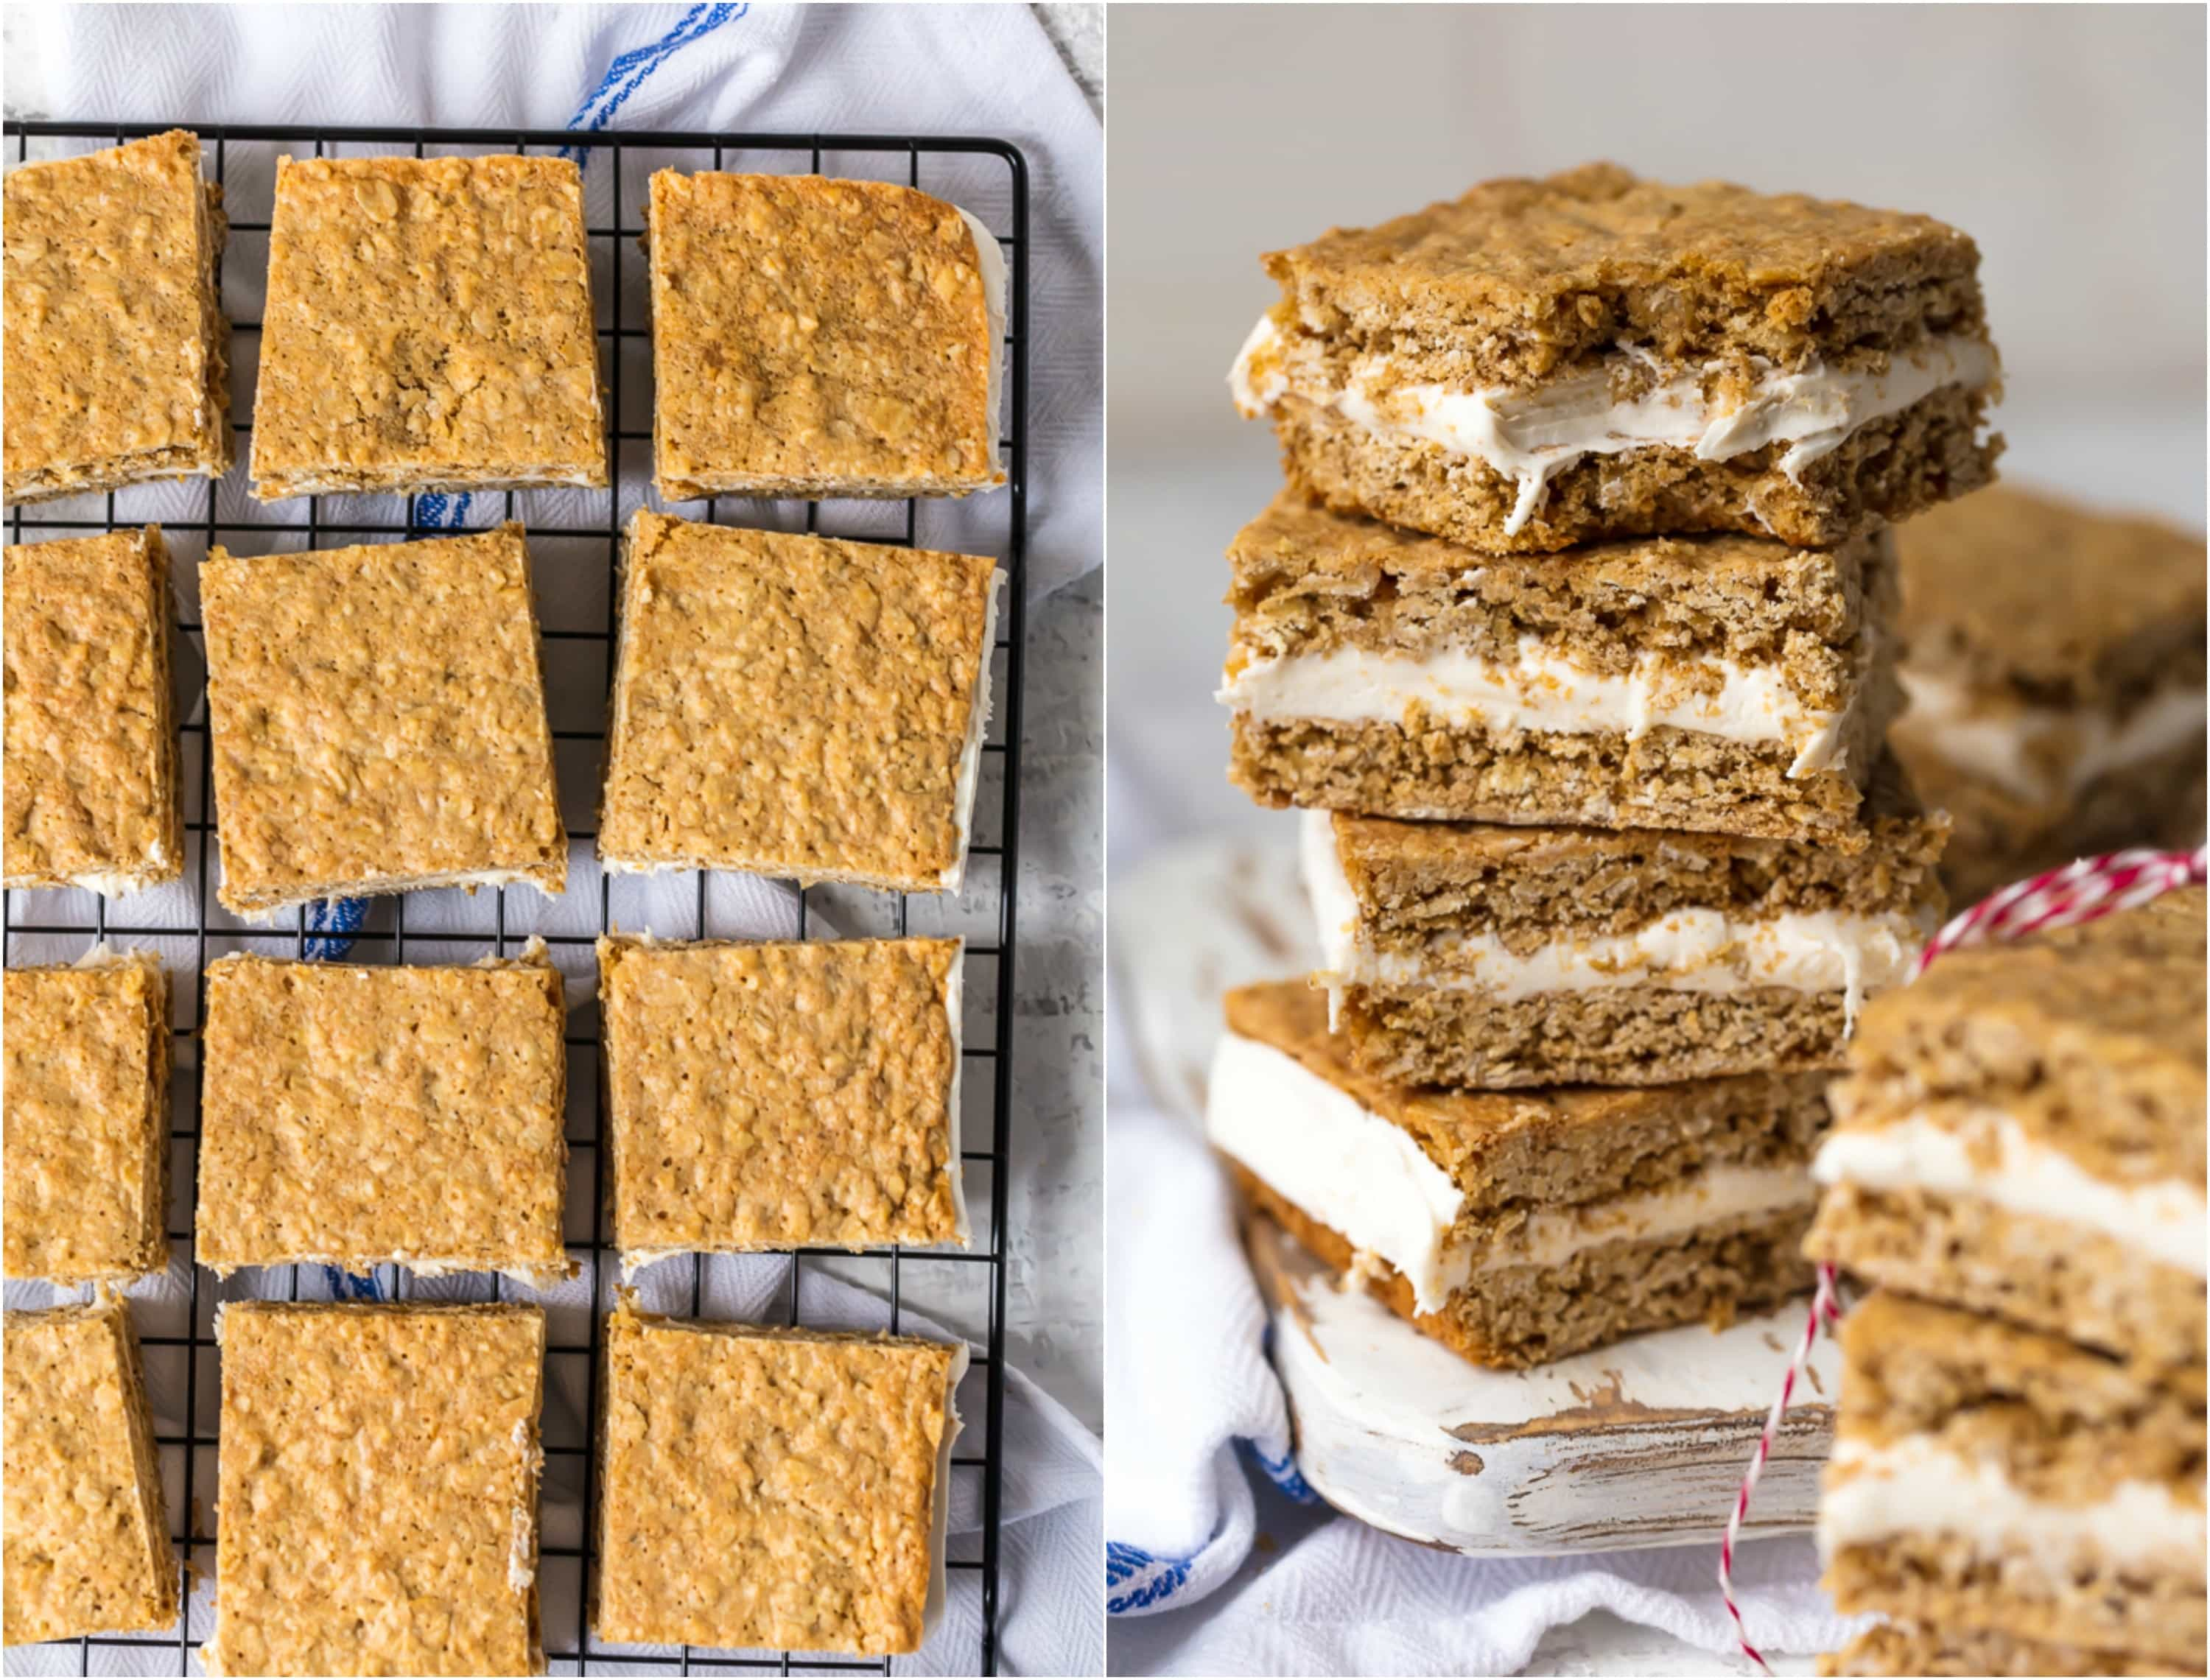 These Homemade Oatmeal Cream Pies are an adult version of a childhood favorite! They're a tasty dream come true, and they're perfect for showing your loved ones just how special they are on Valentine's Day. These Oatmeal Cream Pie Bars have a layer of homemade marshmallow cream icing sandwiched between two perfectly chewy oatmeal cookies, all in bar form! OBSESSED!